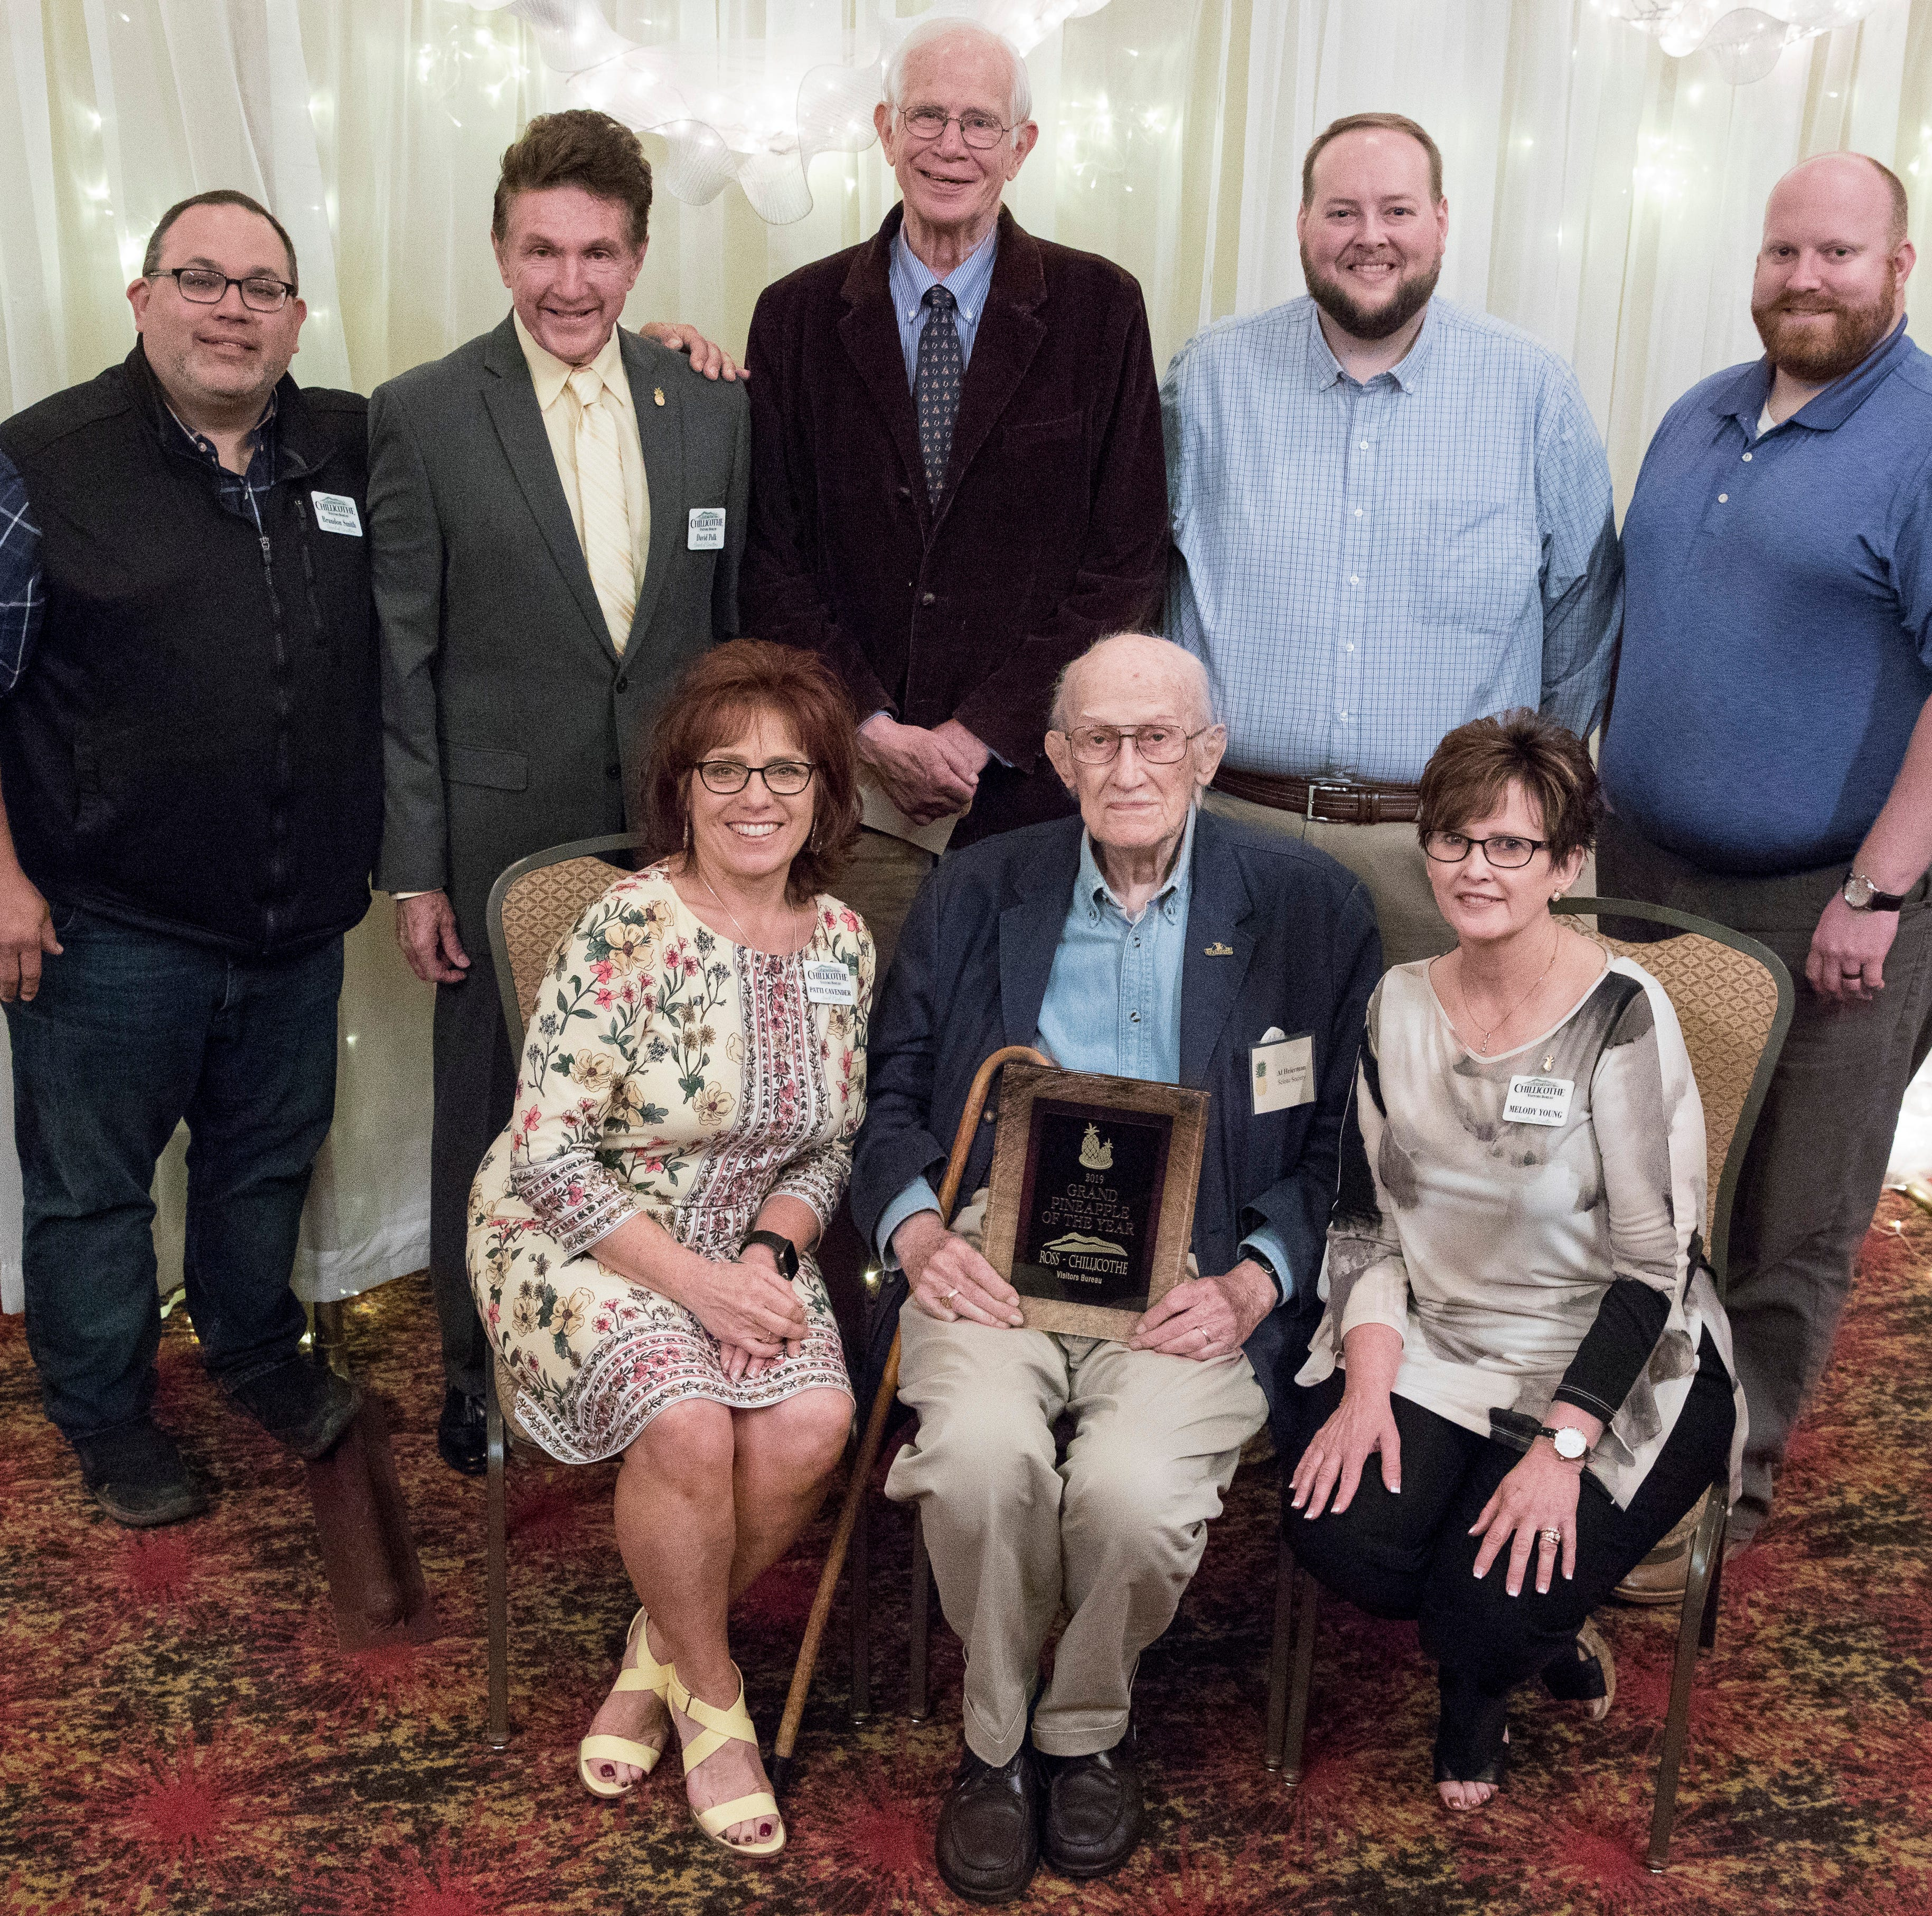 Tourism banquet honors Ashbrook, others for commitment to Ross County